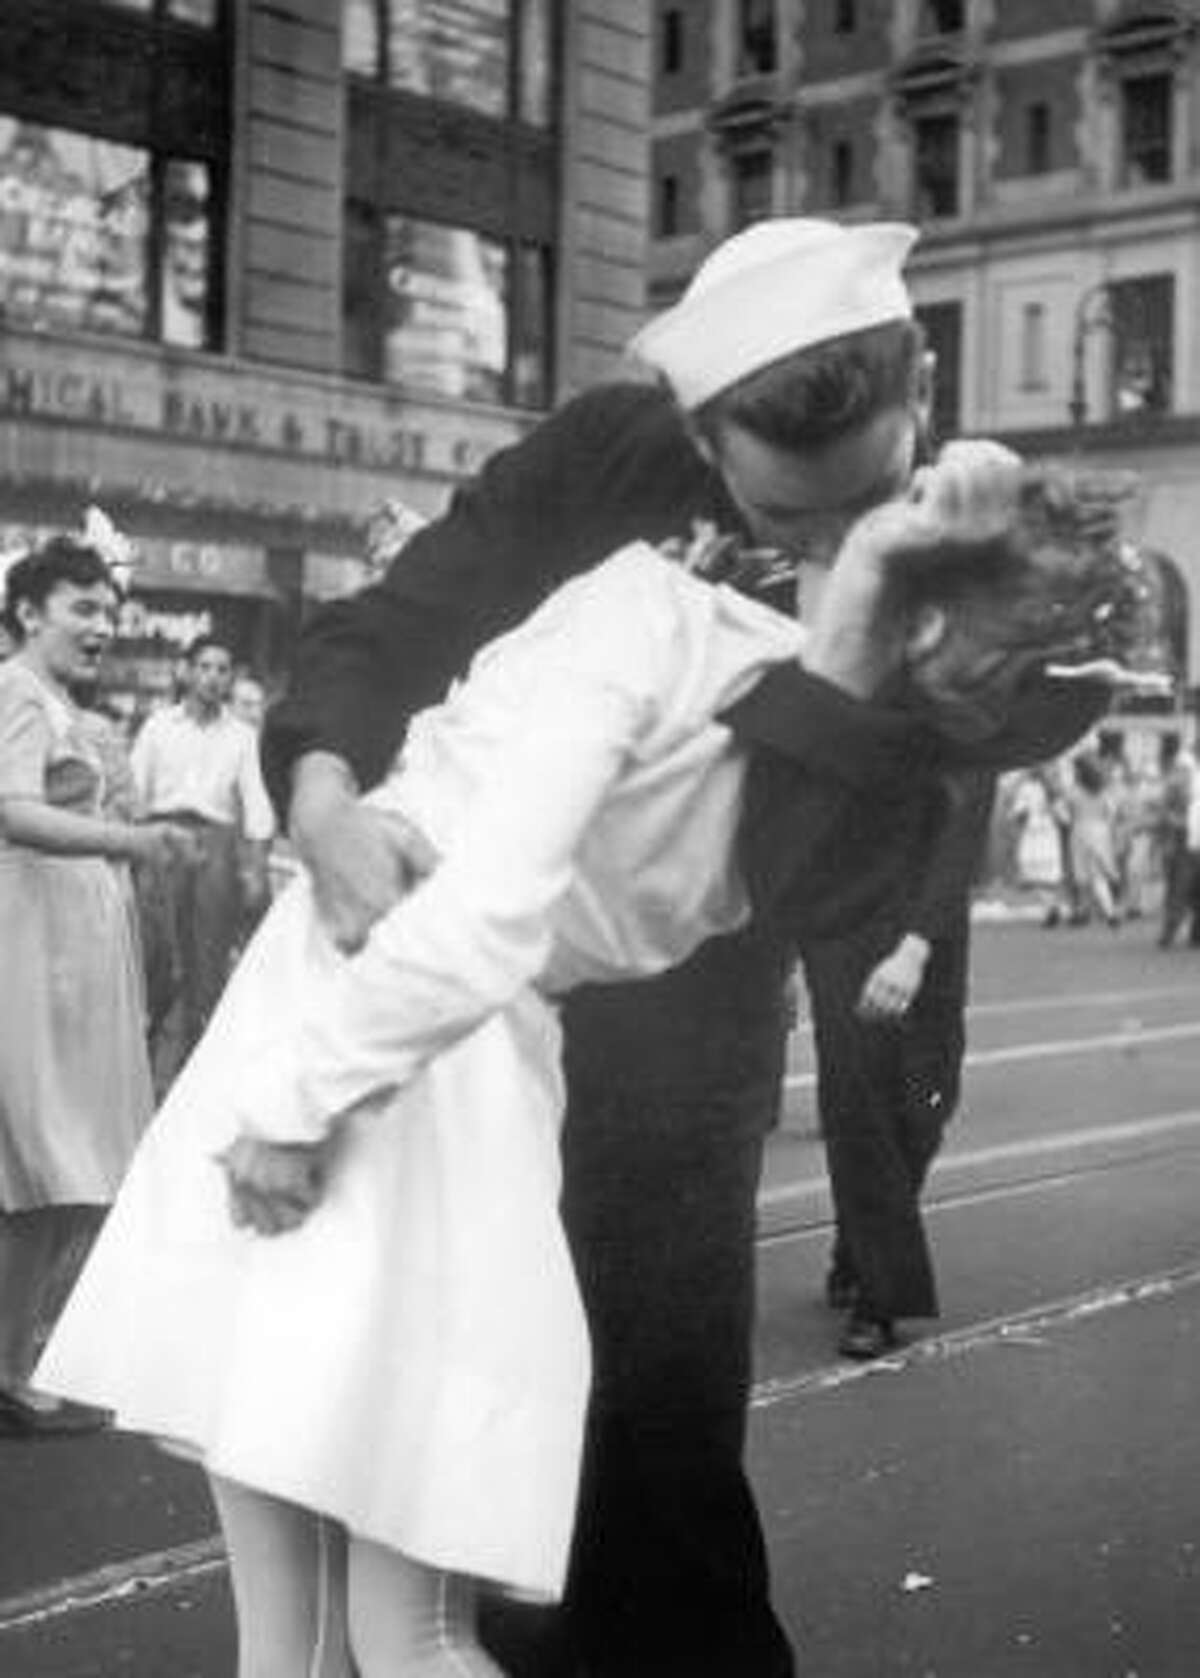 VJ Day This image of a sailor kissing a nurse, captured in New York's Times Square on VJ Day in August, 1945, may be one of the most iconic kiss photos ever.